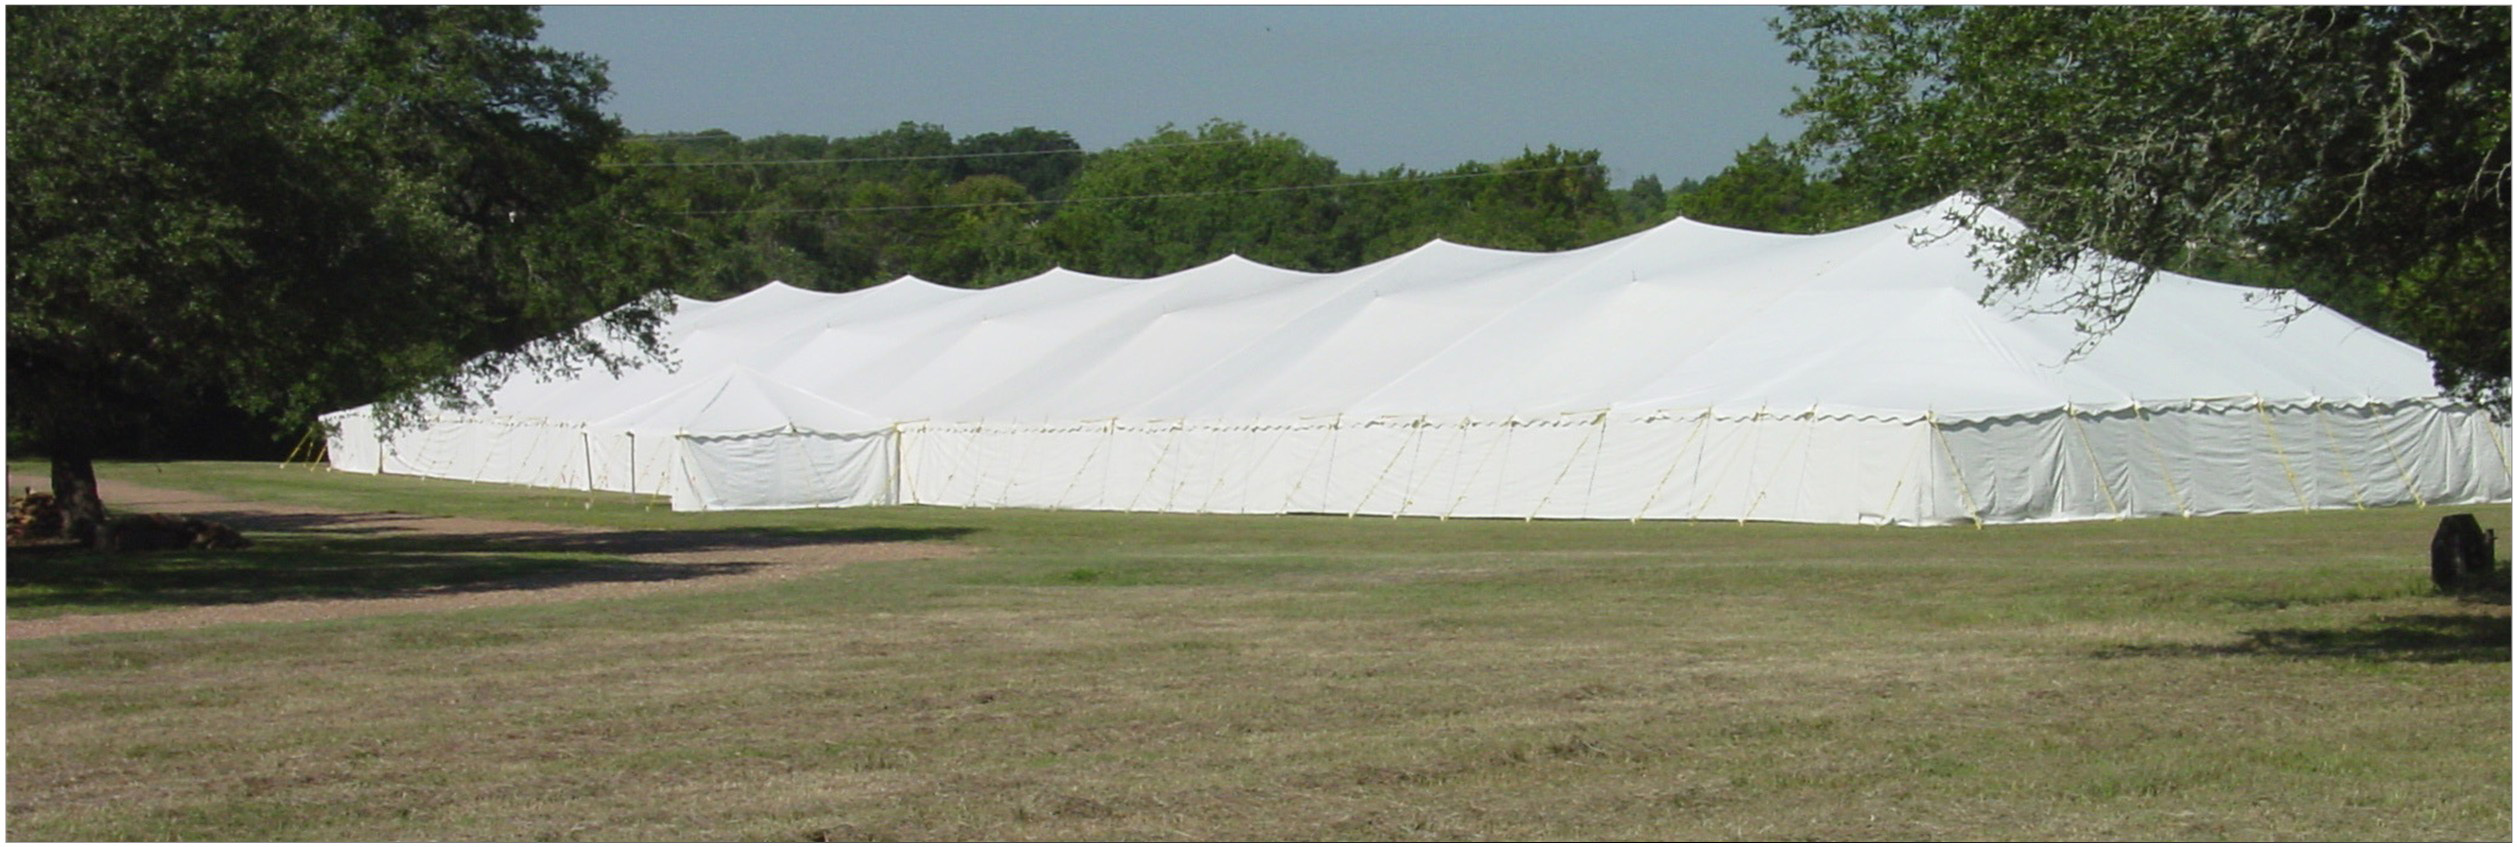 large tradional pole type party tents